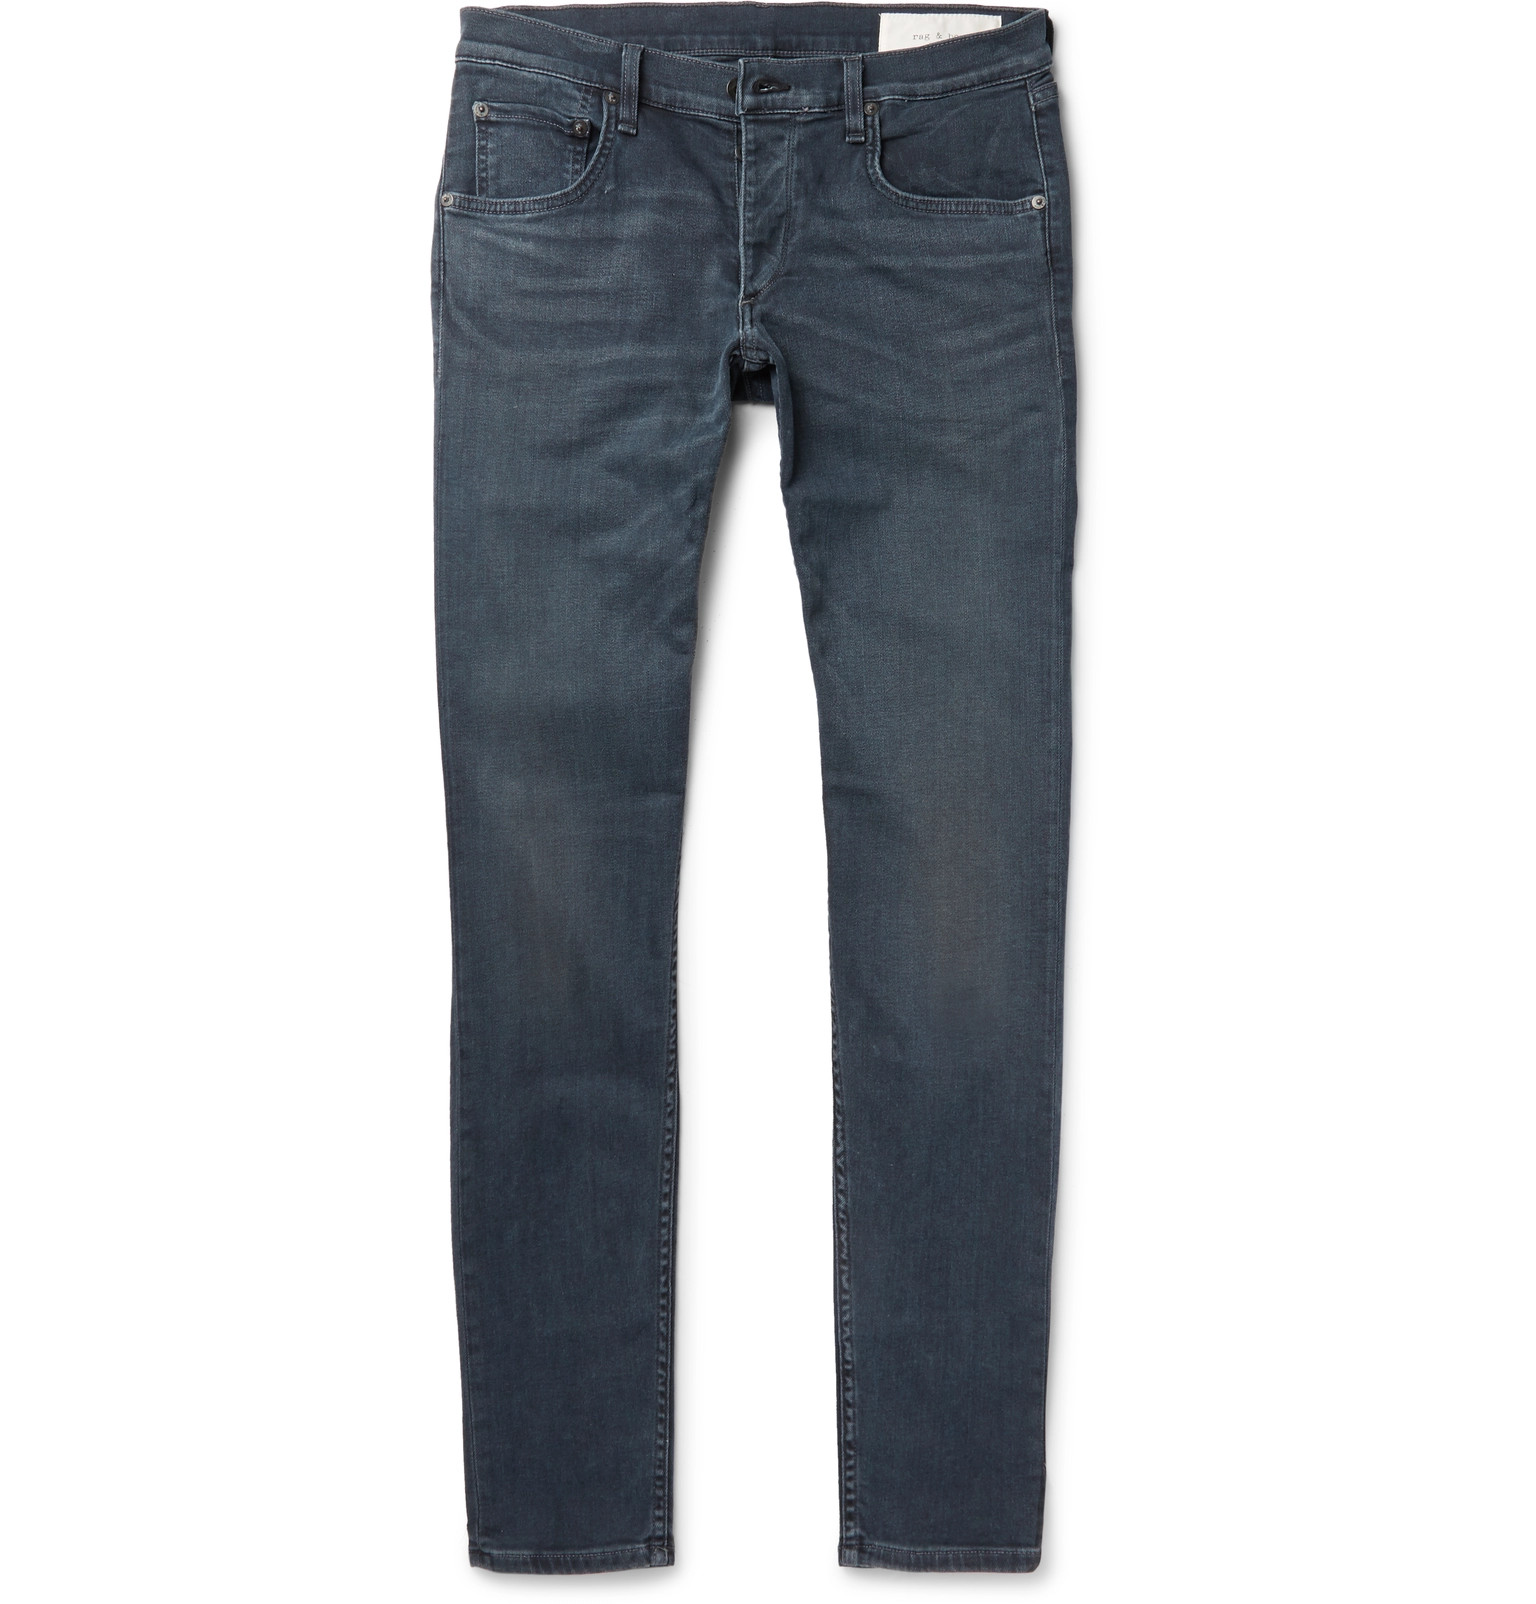 Men's Designer Jeans - Shop Men's Fashion Online at MR PORTER